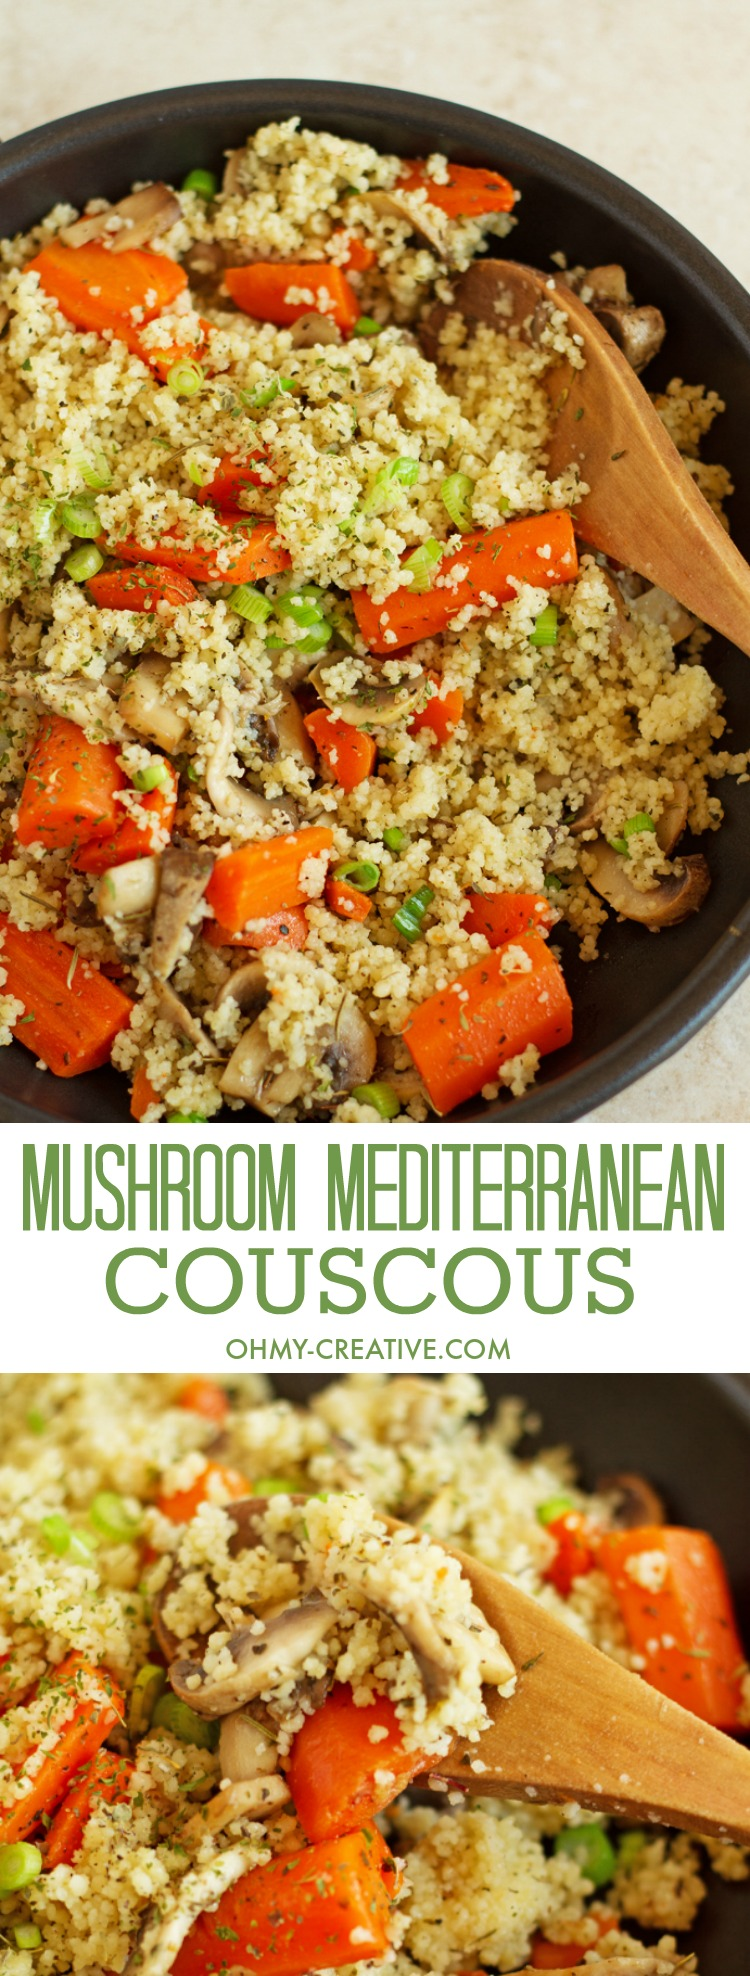 This Mushroom Mediterranean Couscous Recipe with carrots is sauteed with lemon juice and garlic. A meatless, quick and delicious dinner idea or side dish! Add it to your vegetarian recipes! Popular Pins by OHMY-CREATIVE.COM